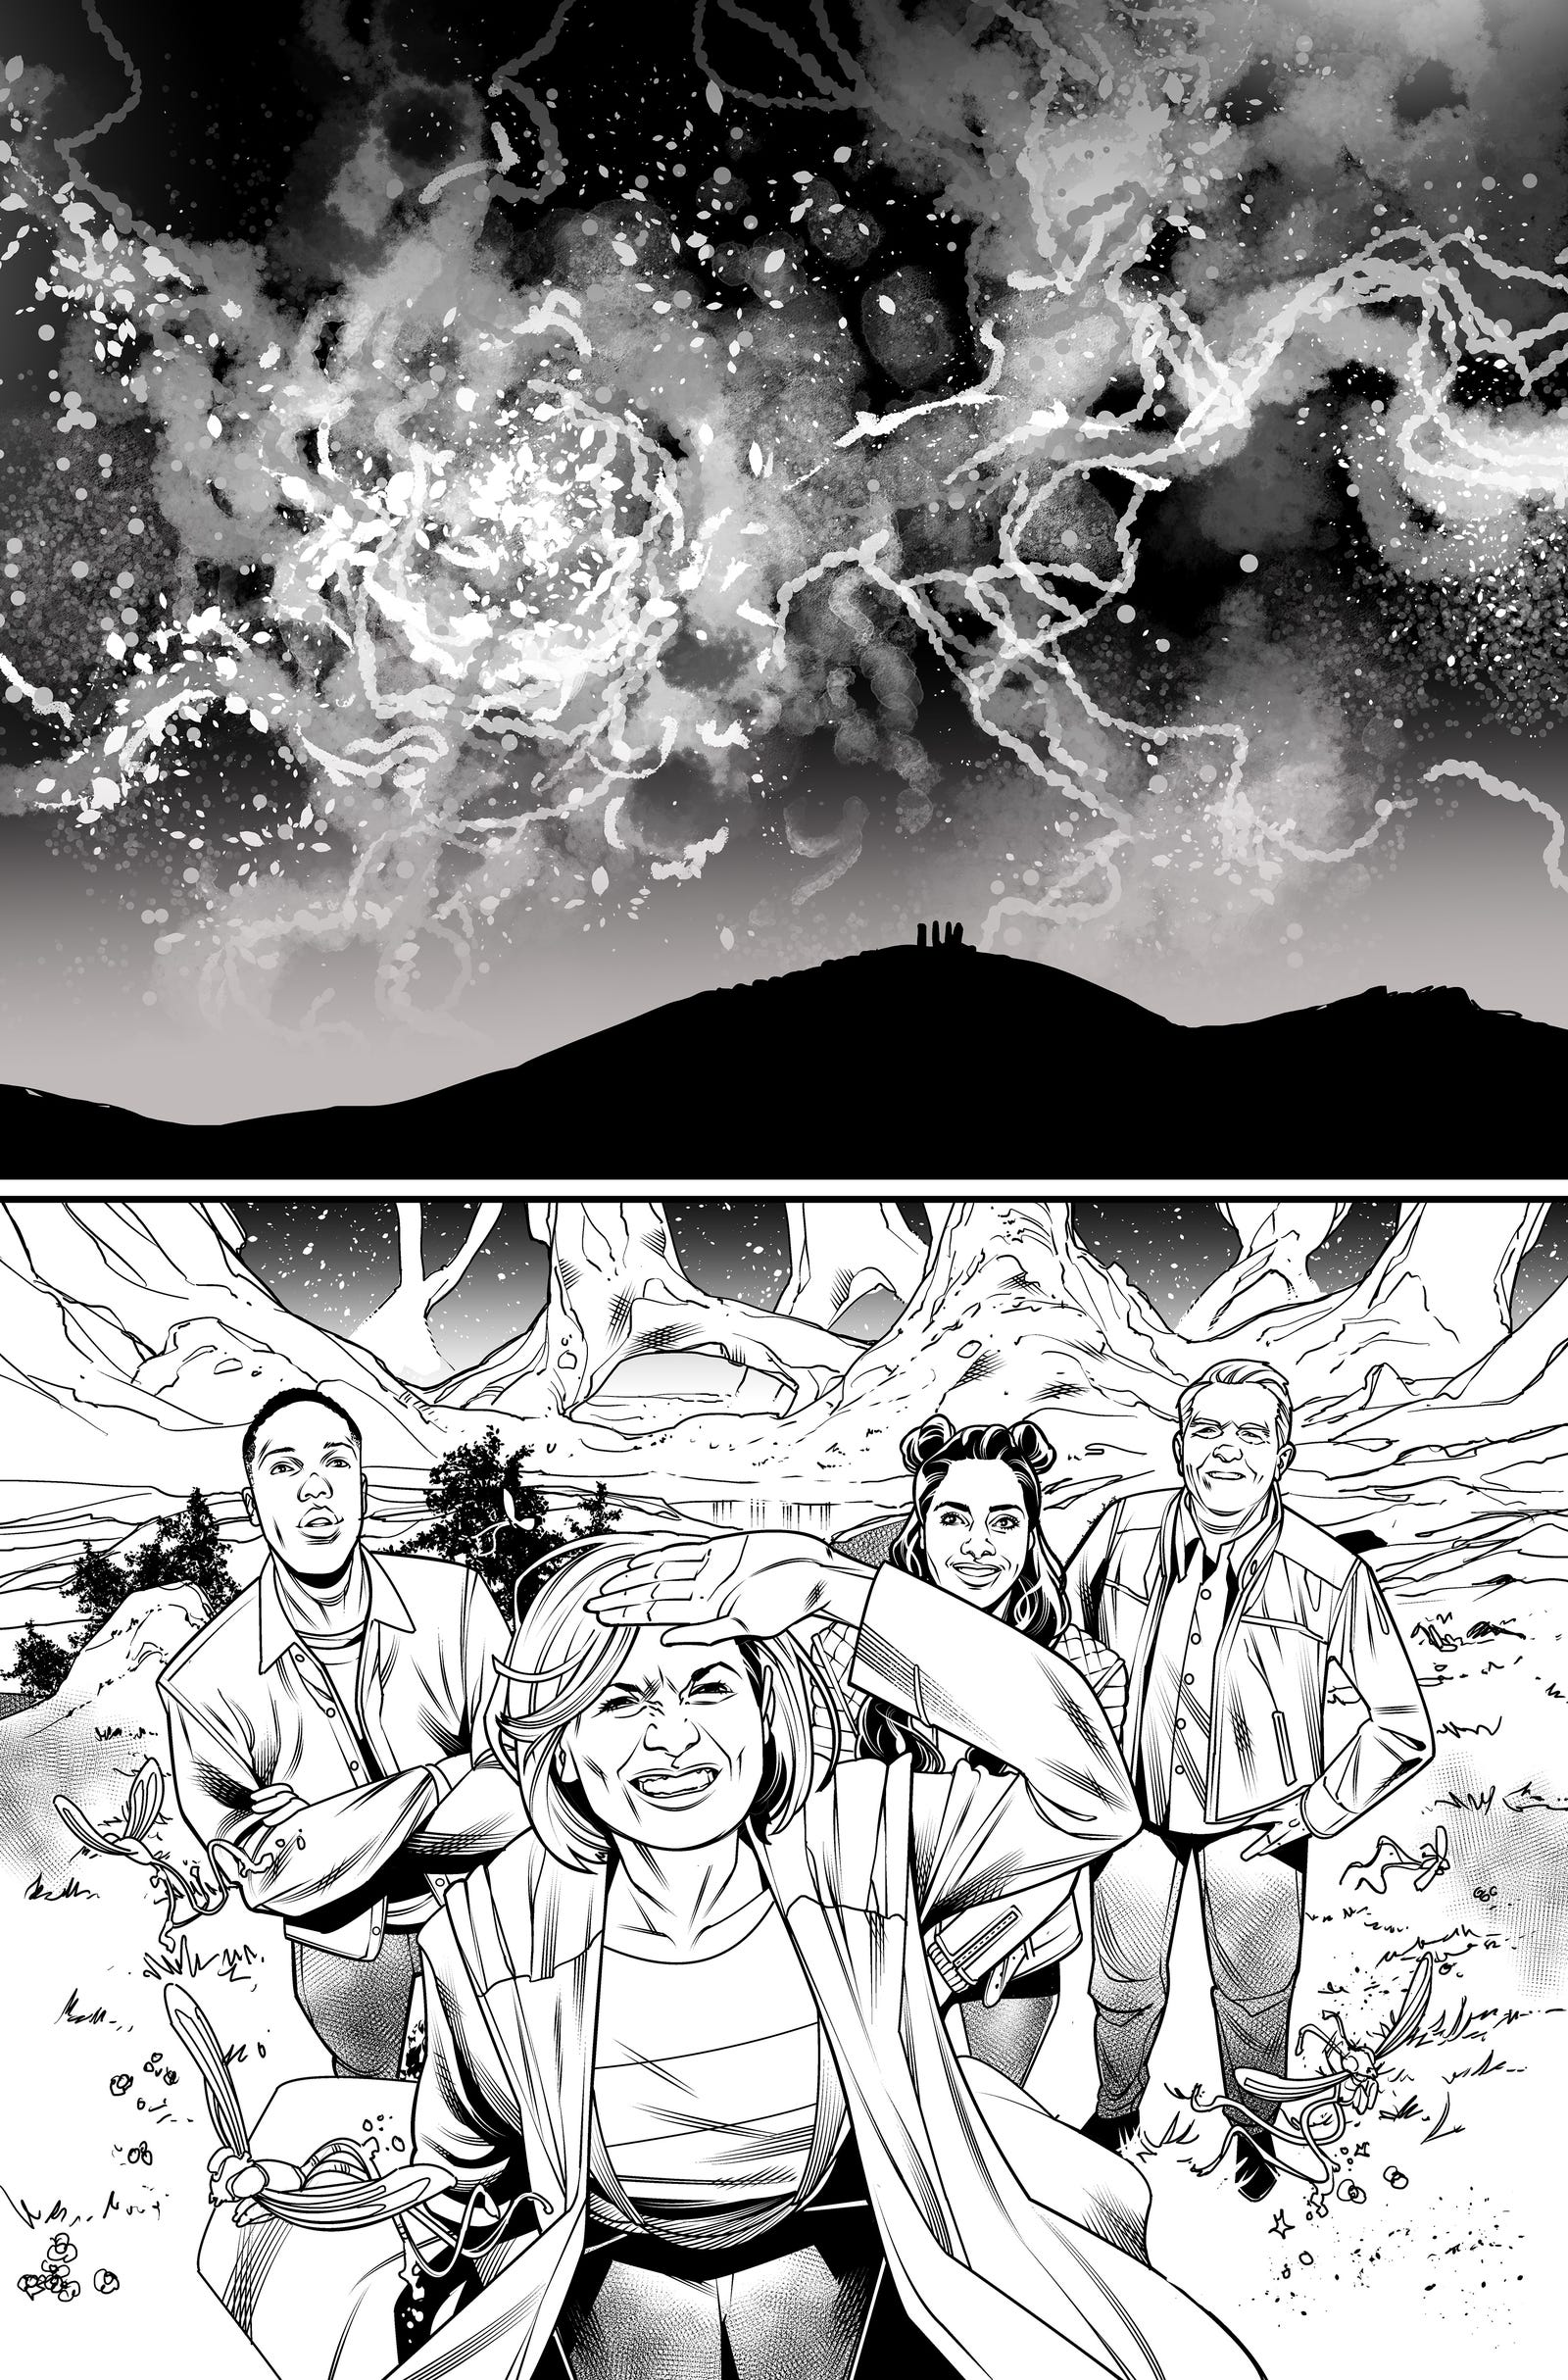 Thirteenth Doctor #1 line art by Rachael Stott.